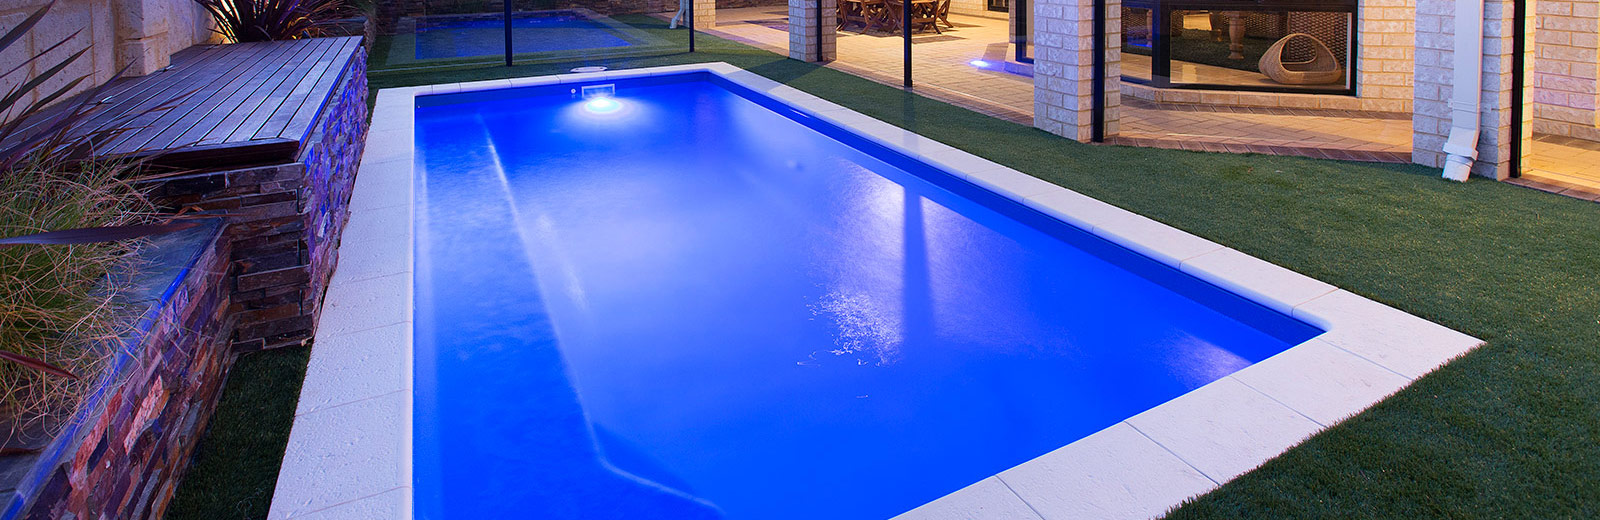 Fibreglass swimming pools nz aqua technics auckland - Swimming pool maintenance auckland ...